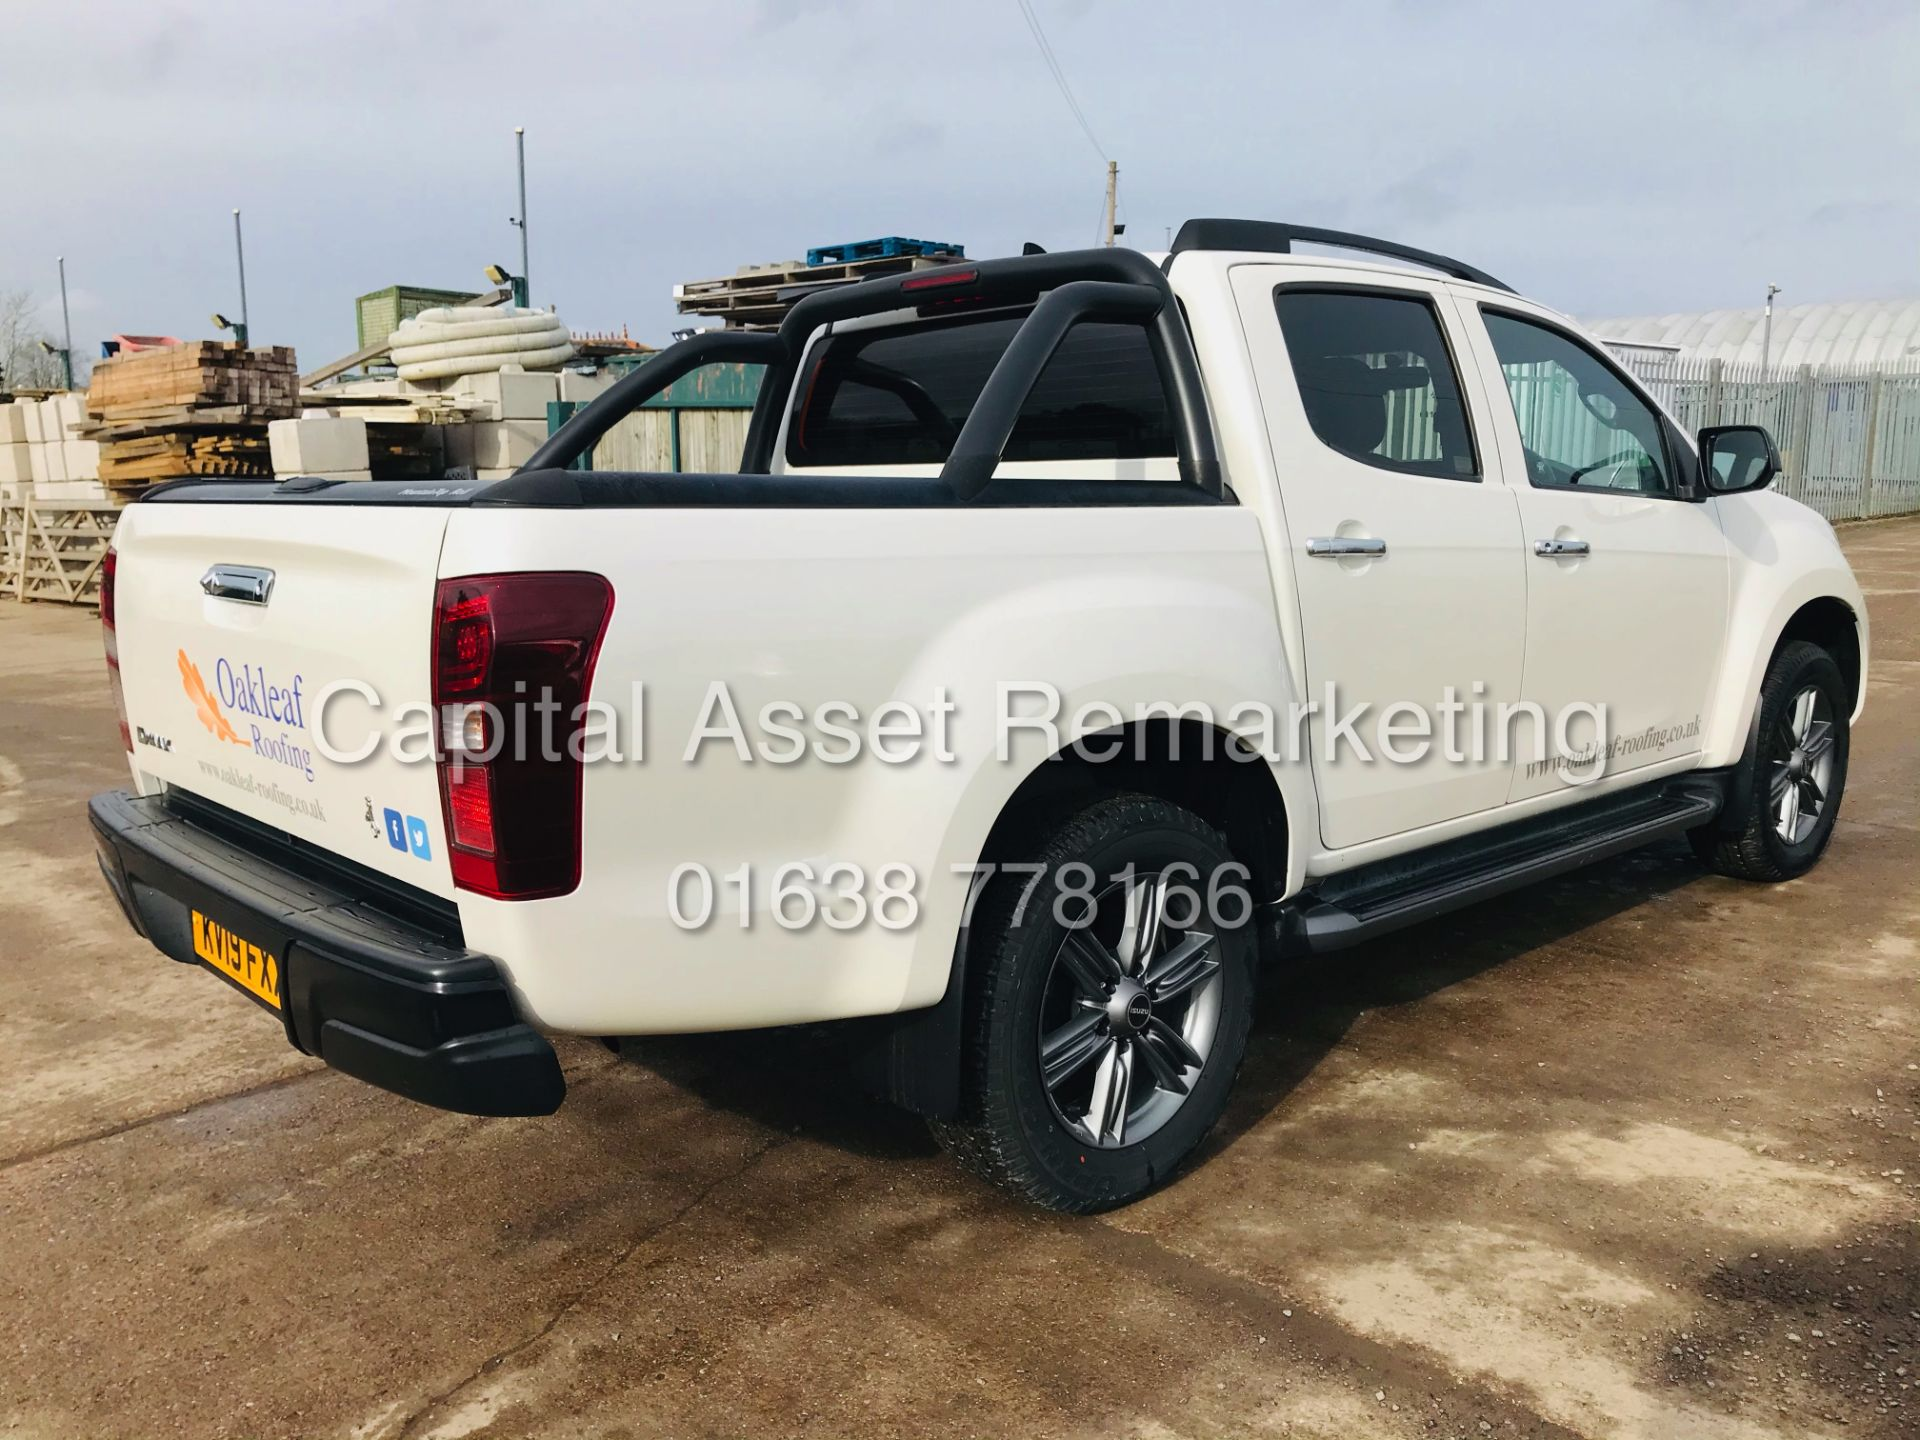 "(On Sale) ISUZU D-MAX ""BLADE"" AUTO - 1 OWNER (2019 - EURO 6) LEATHER - SAT NAV *TOP SPEC* - Image 11 of 34"